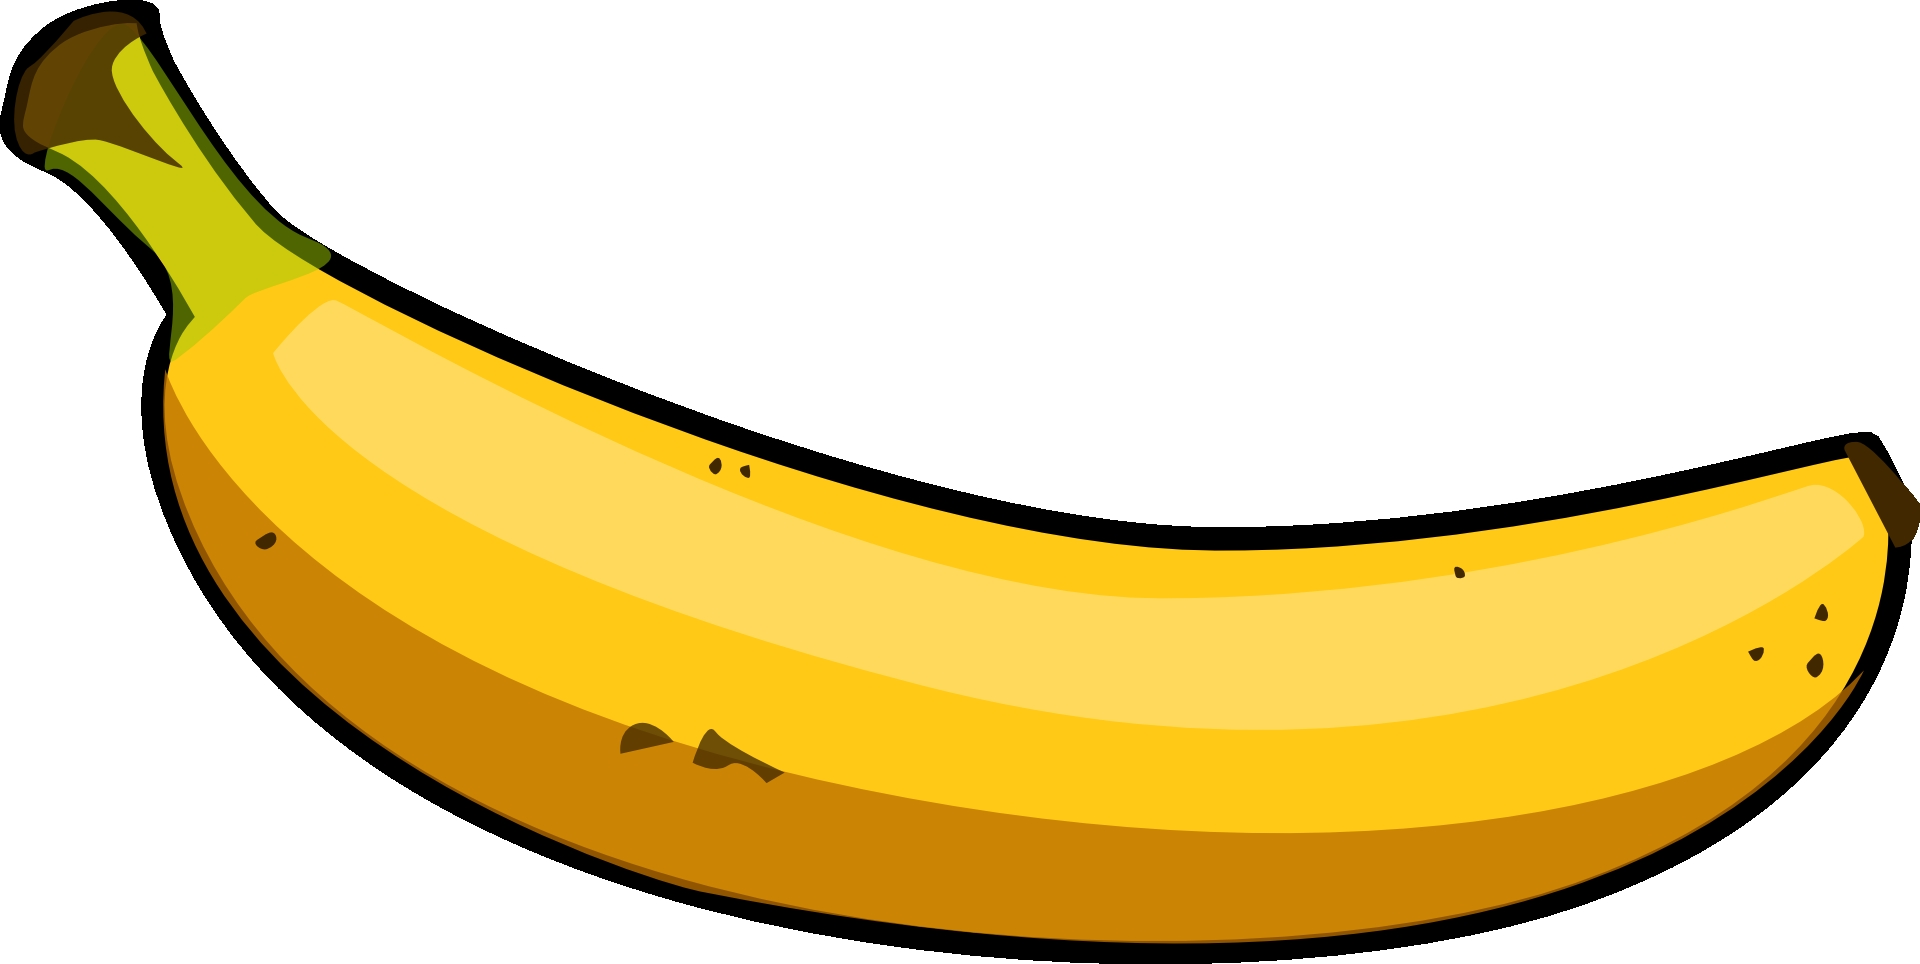 banana clipart at getdrawings com free for personal use banana rh getdrawings com banana clip art images banana clip art images